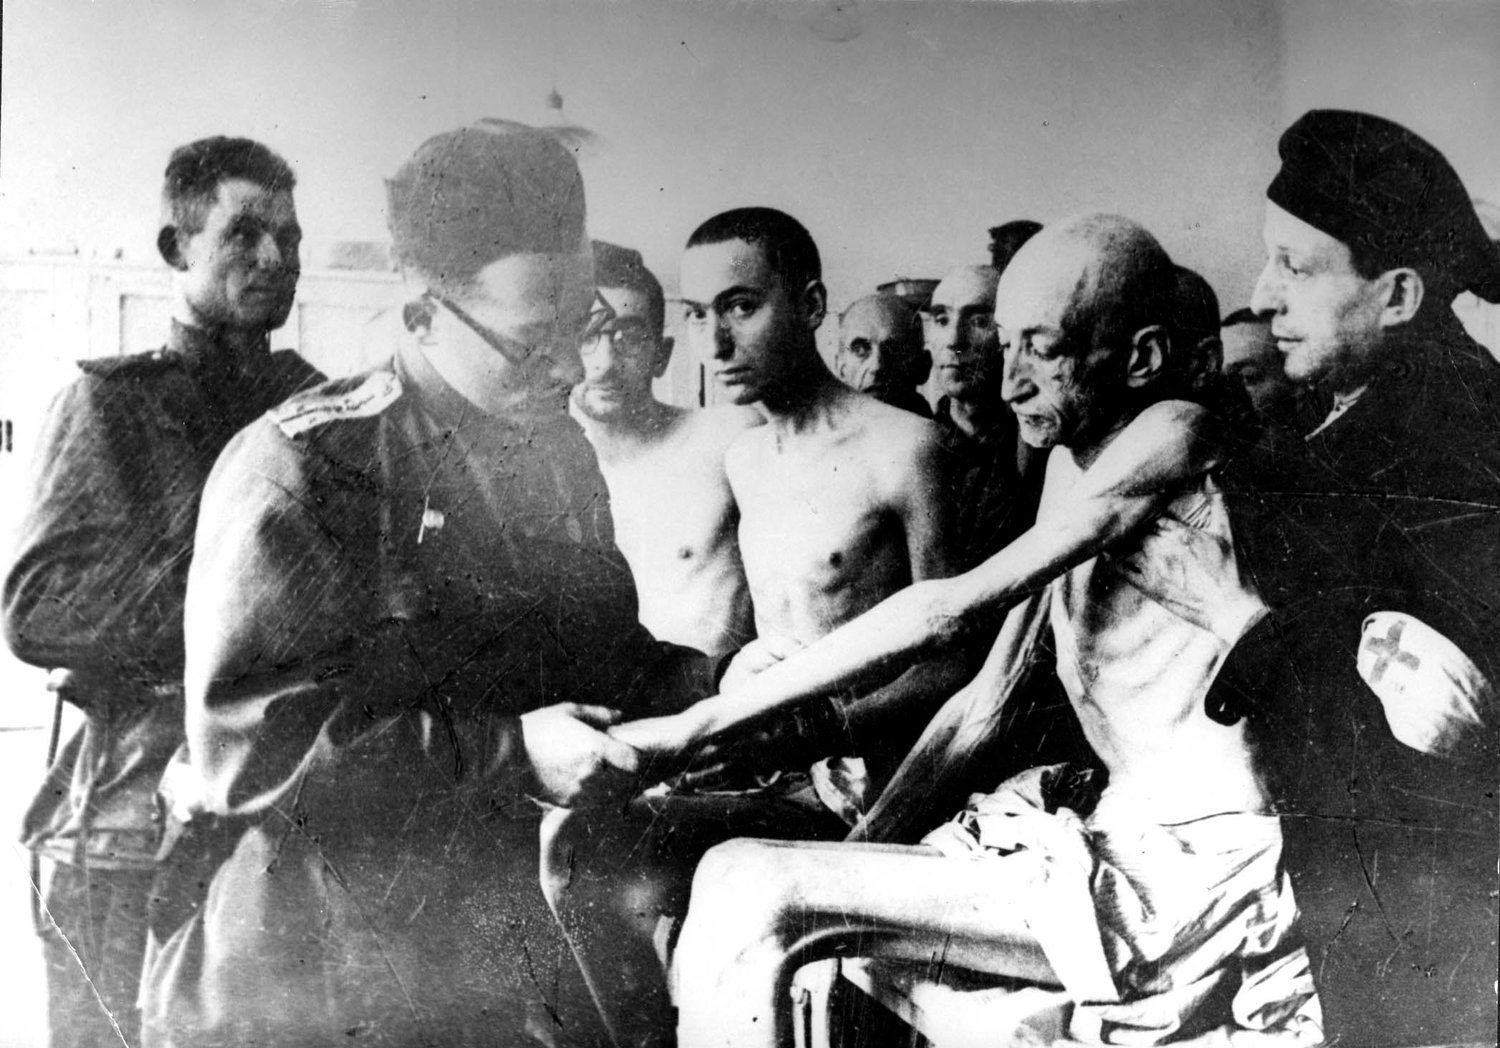 A Russian military doctor examines Holocaust survivors after the liberation of the Nazi death camp Auschwitz-Birkenau in 1945 in Oswiecim, Poland. Historians estimate that the Nazis sent at least 1.3 million people to Auschwitz between 1940-45, and it is believed that some 1.1 million of those perished there. Auschwitz was liberated by the Russian Army Jan. 27, 1945.